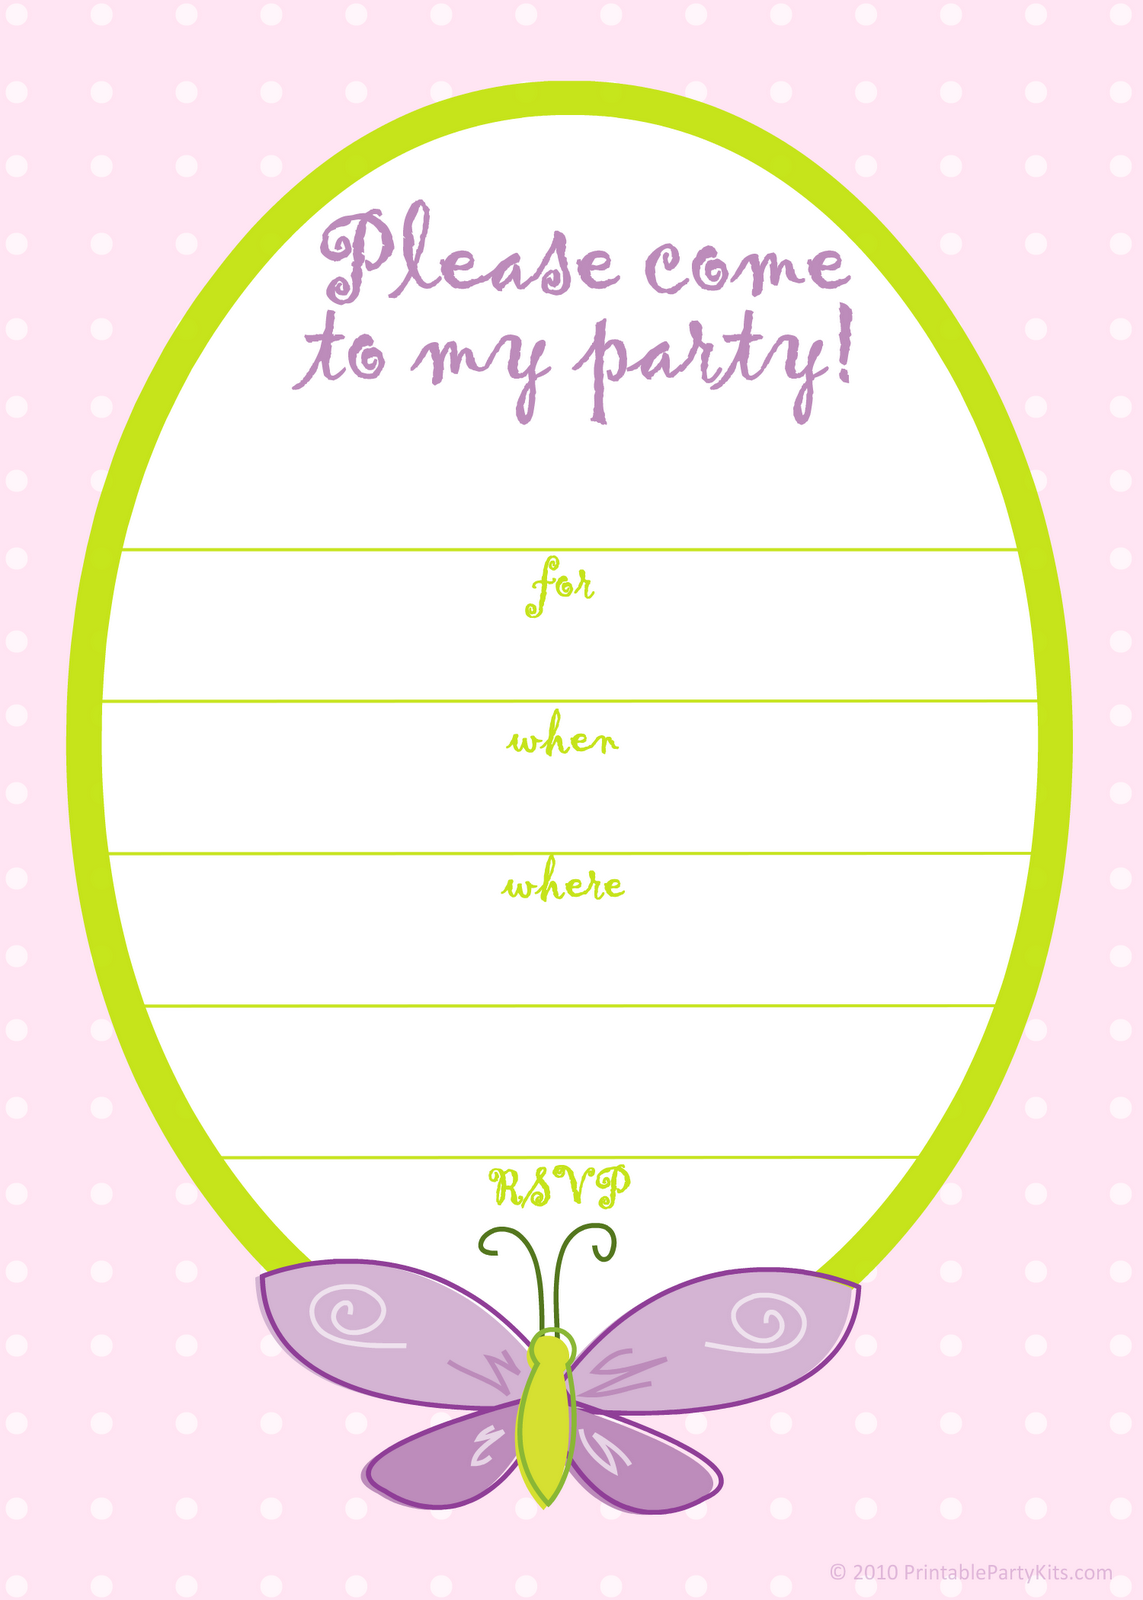 Free Printable Party Invitations April